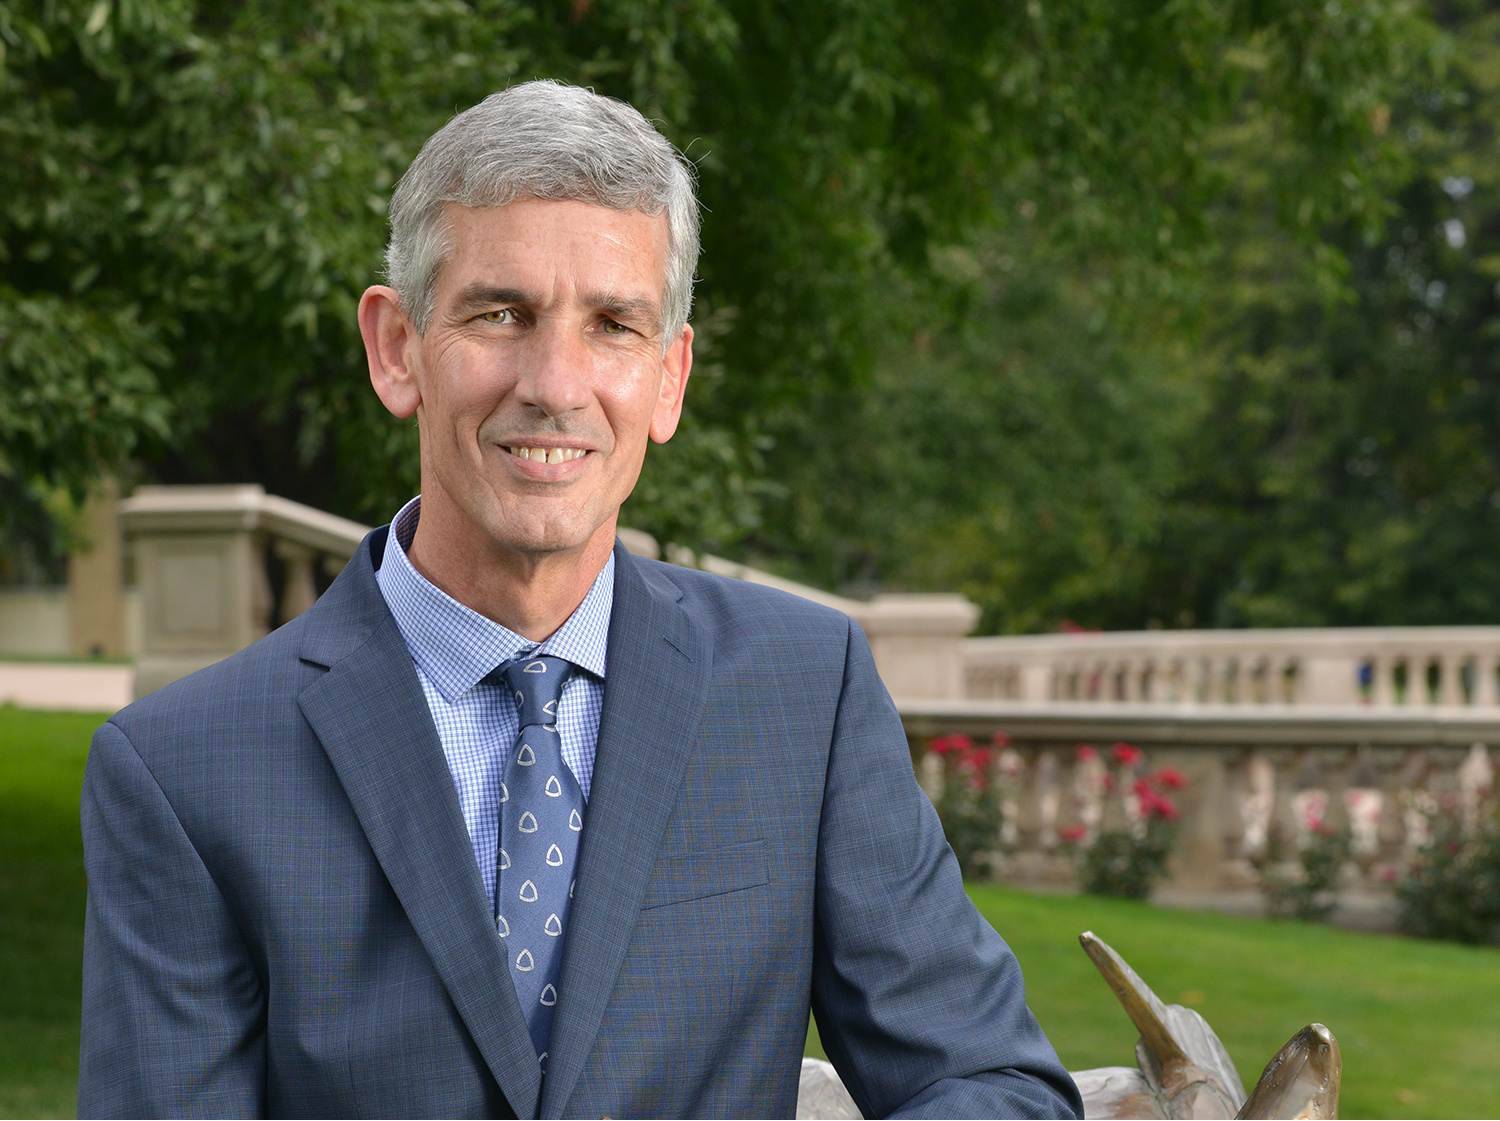 Colorado School of Mines President Paul C. Johnson